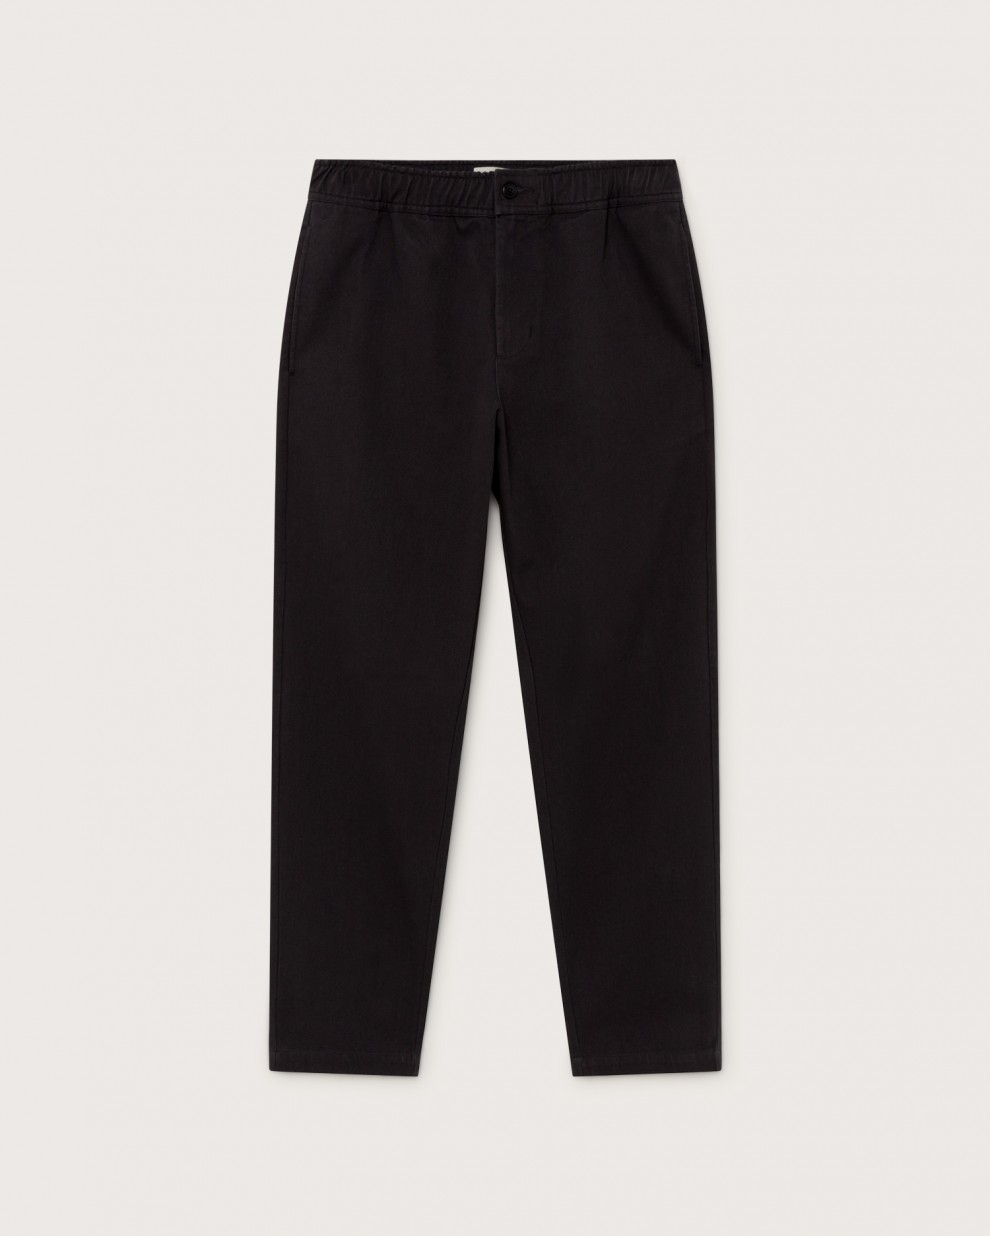 BLACK TRAVEL PANTS